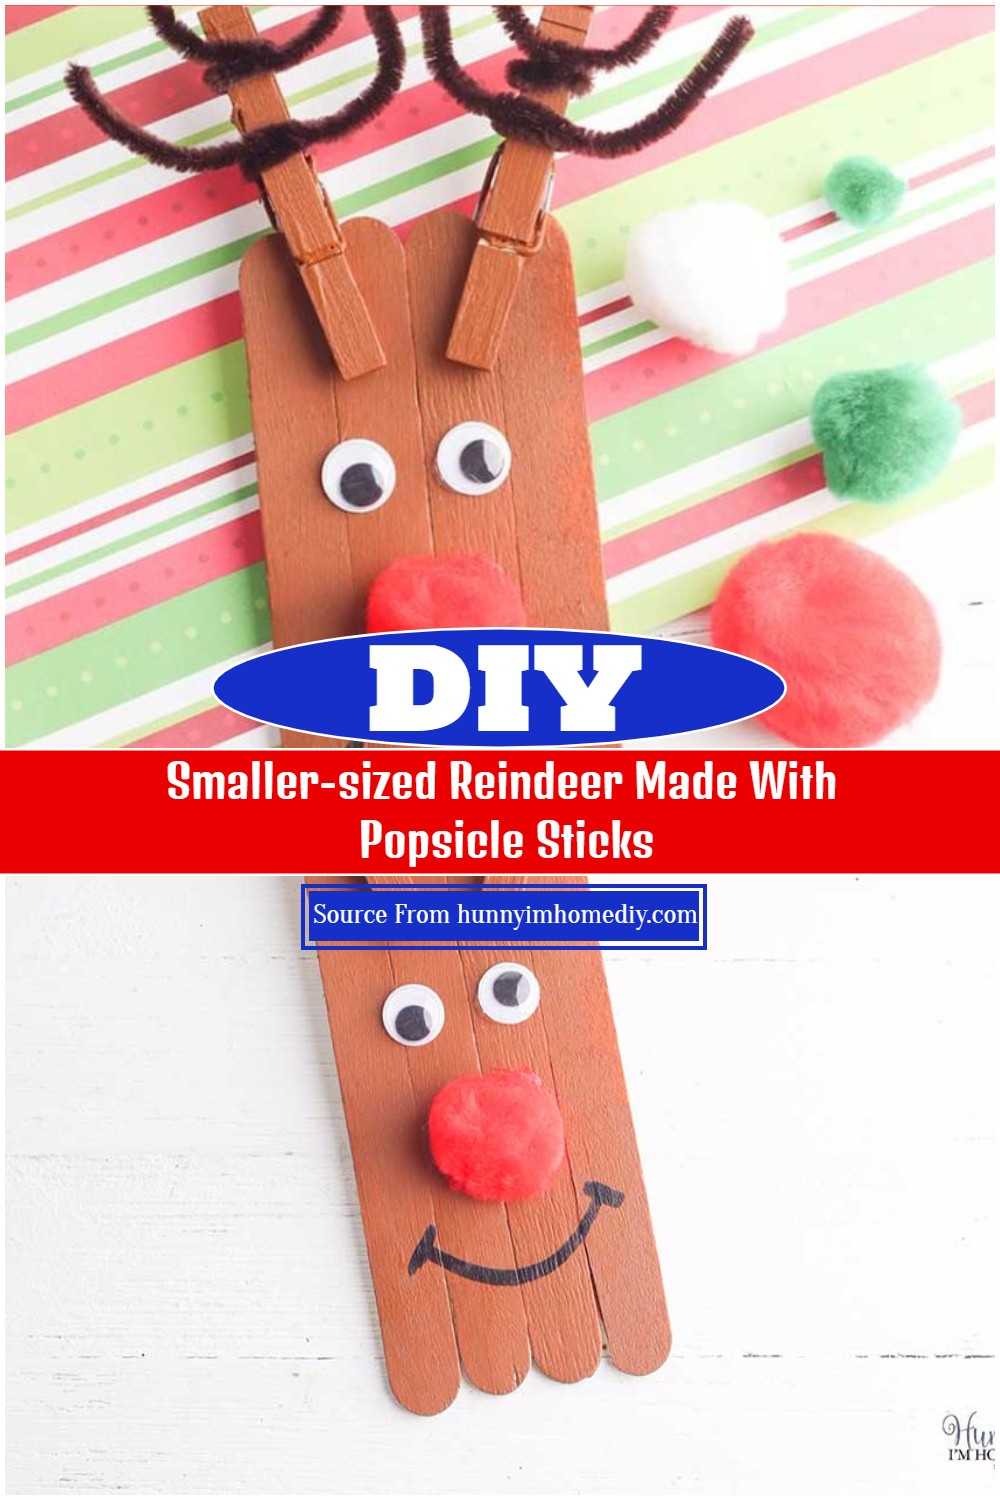 Smaller-sized Reindeer Made With Popsicle Sticks